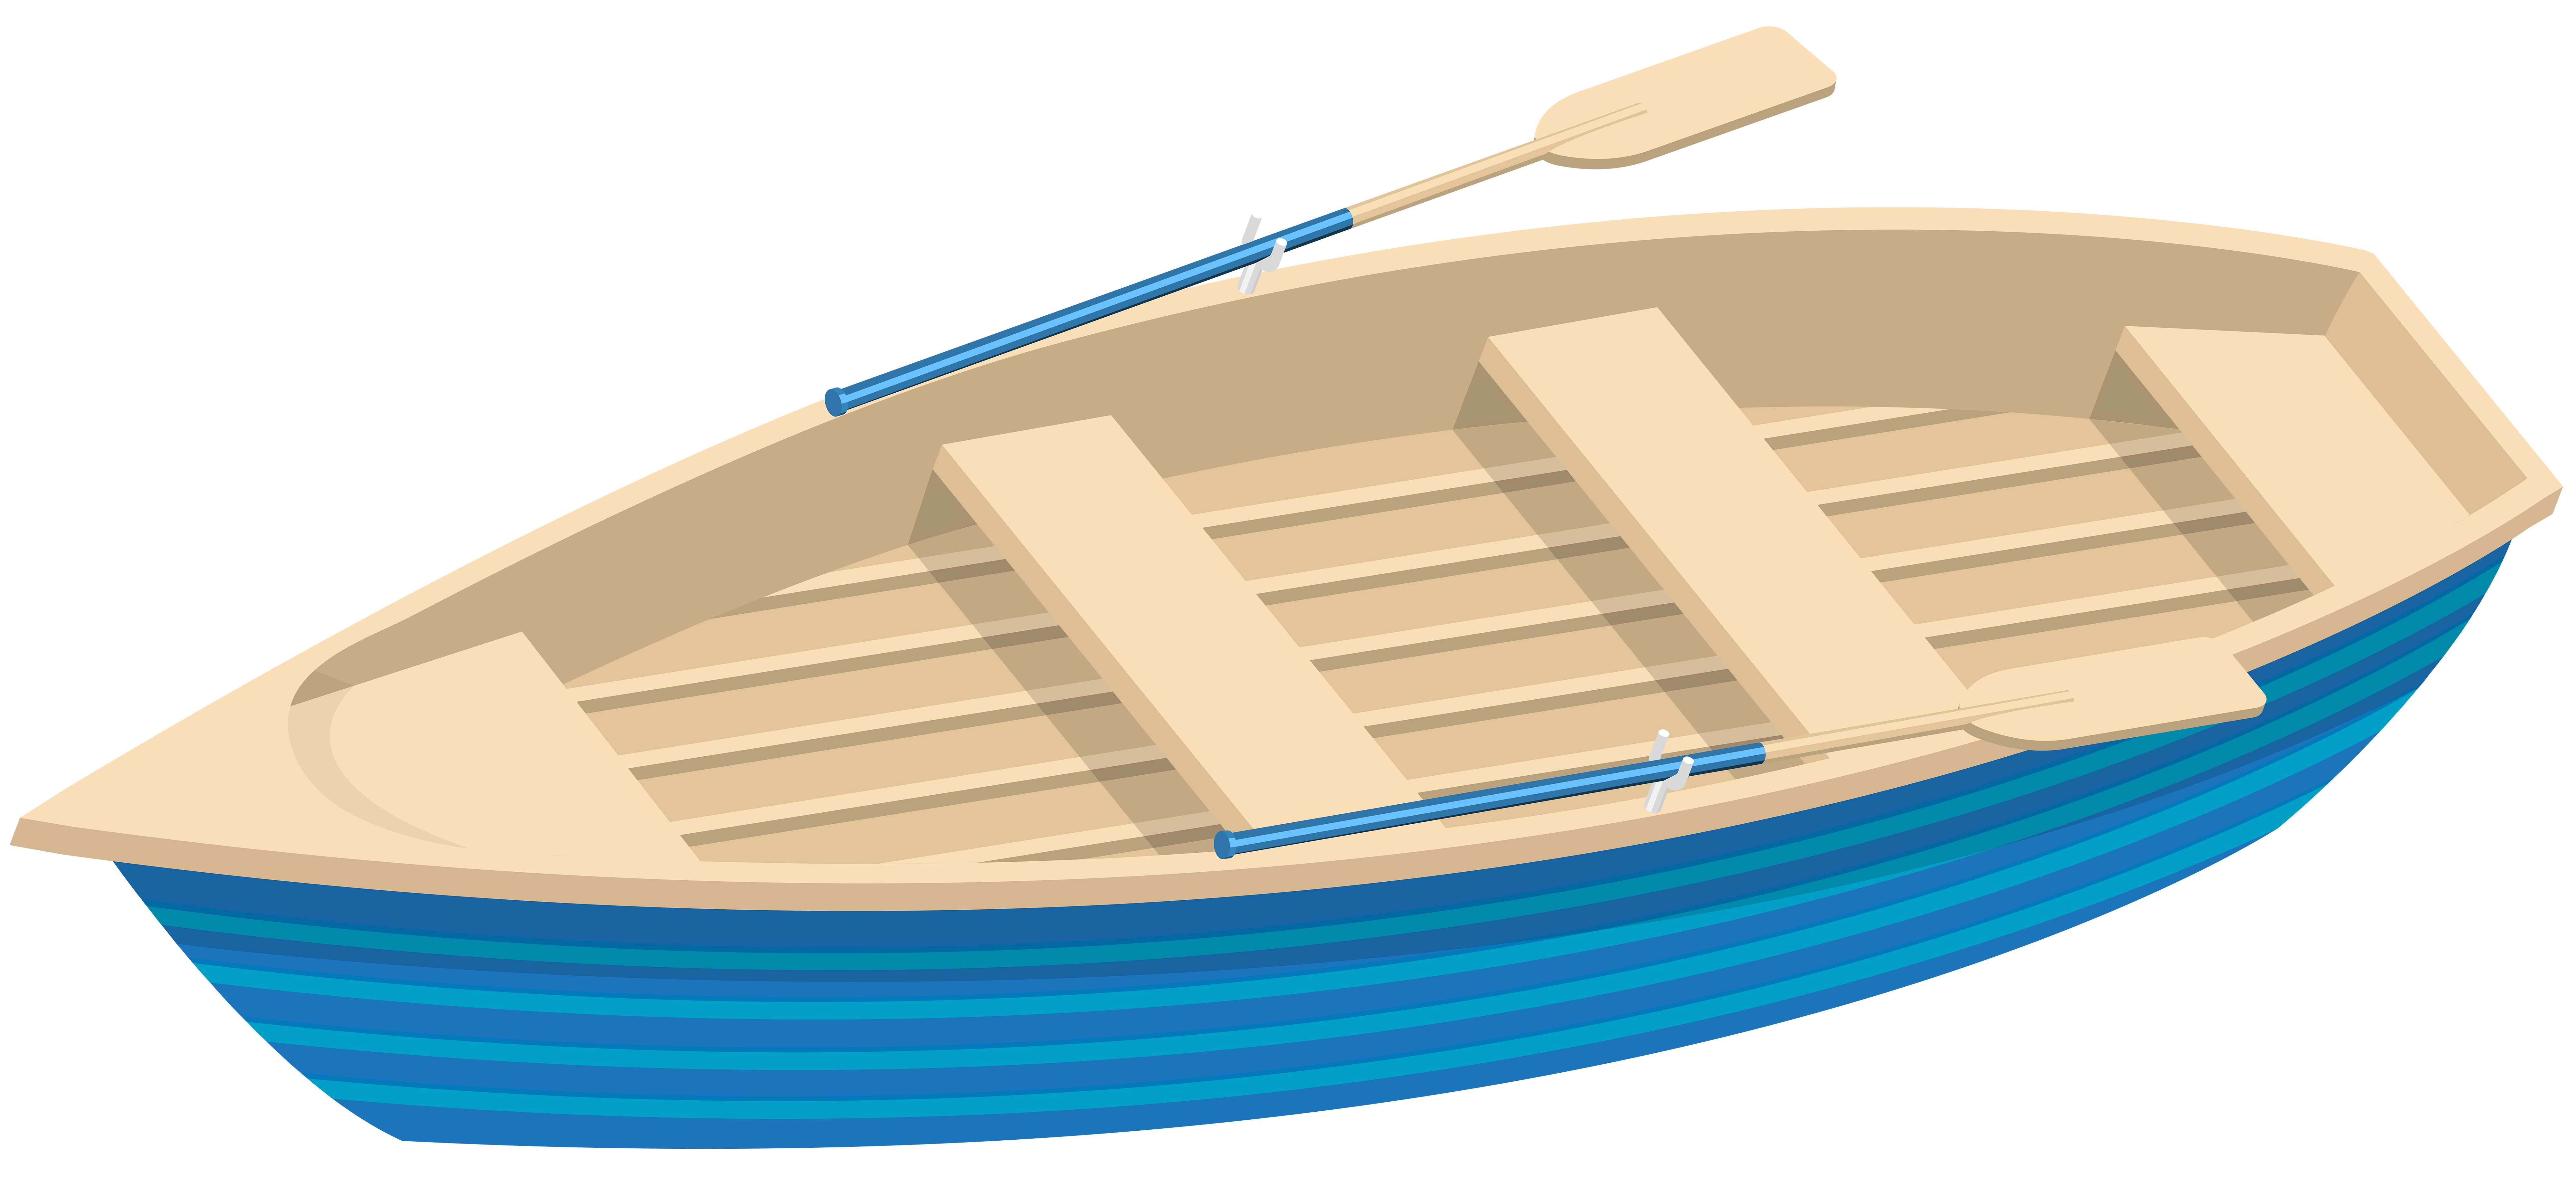 Boat Clipart Png Free Boat Clipart Png Transparent Images 46672 Pngio